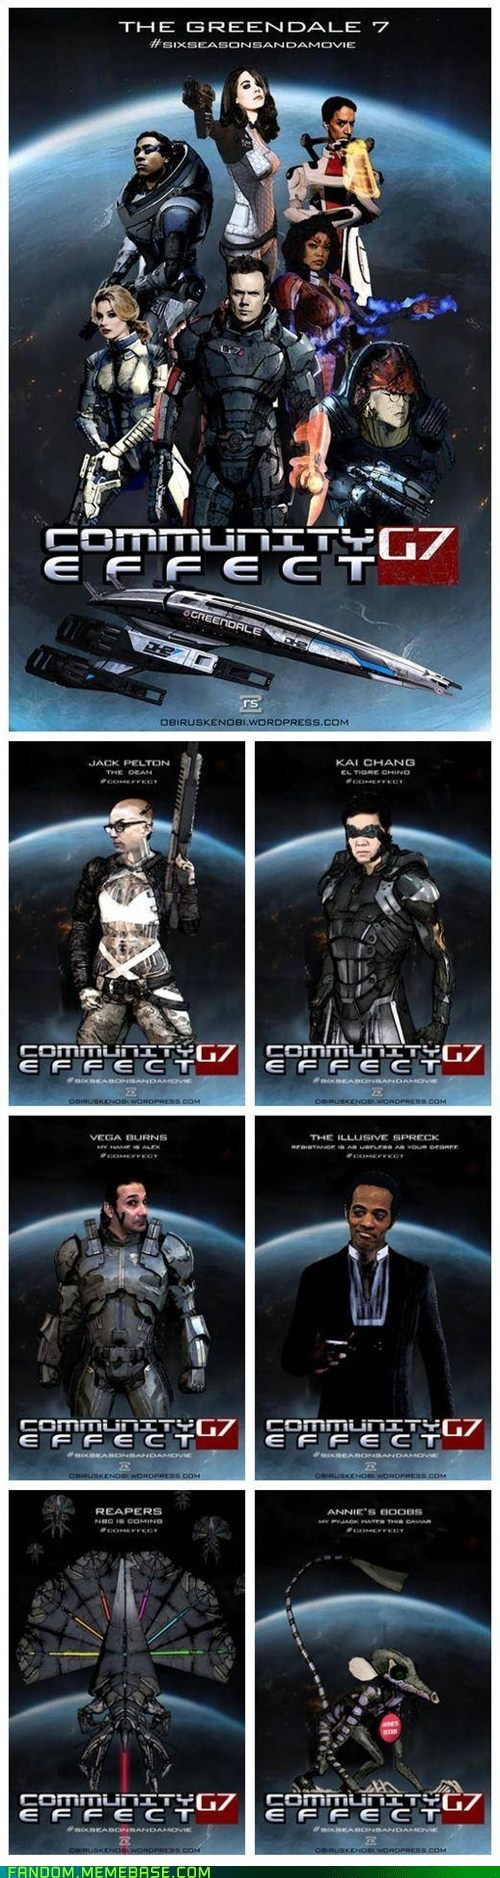 community crossover Fan Art mass effect TV video games - 6414116608